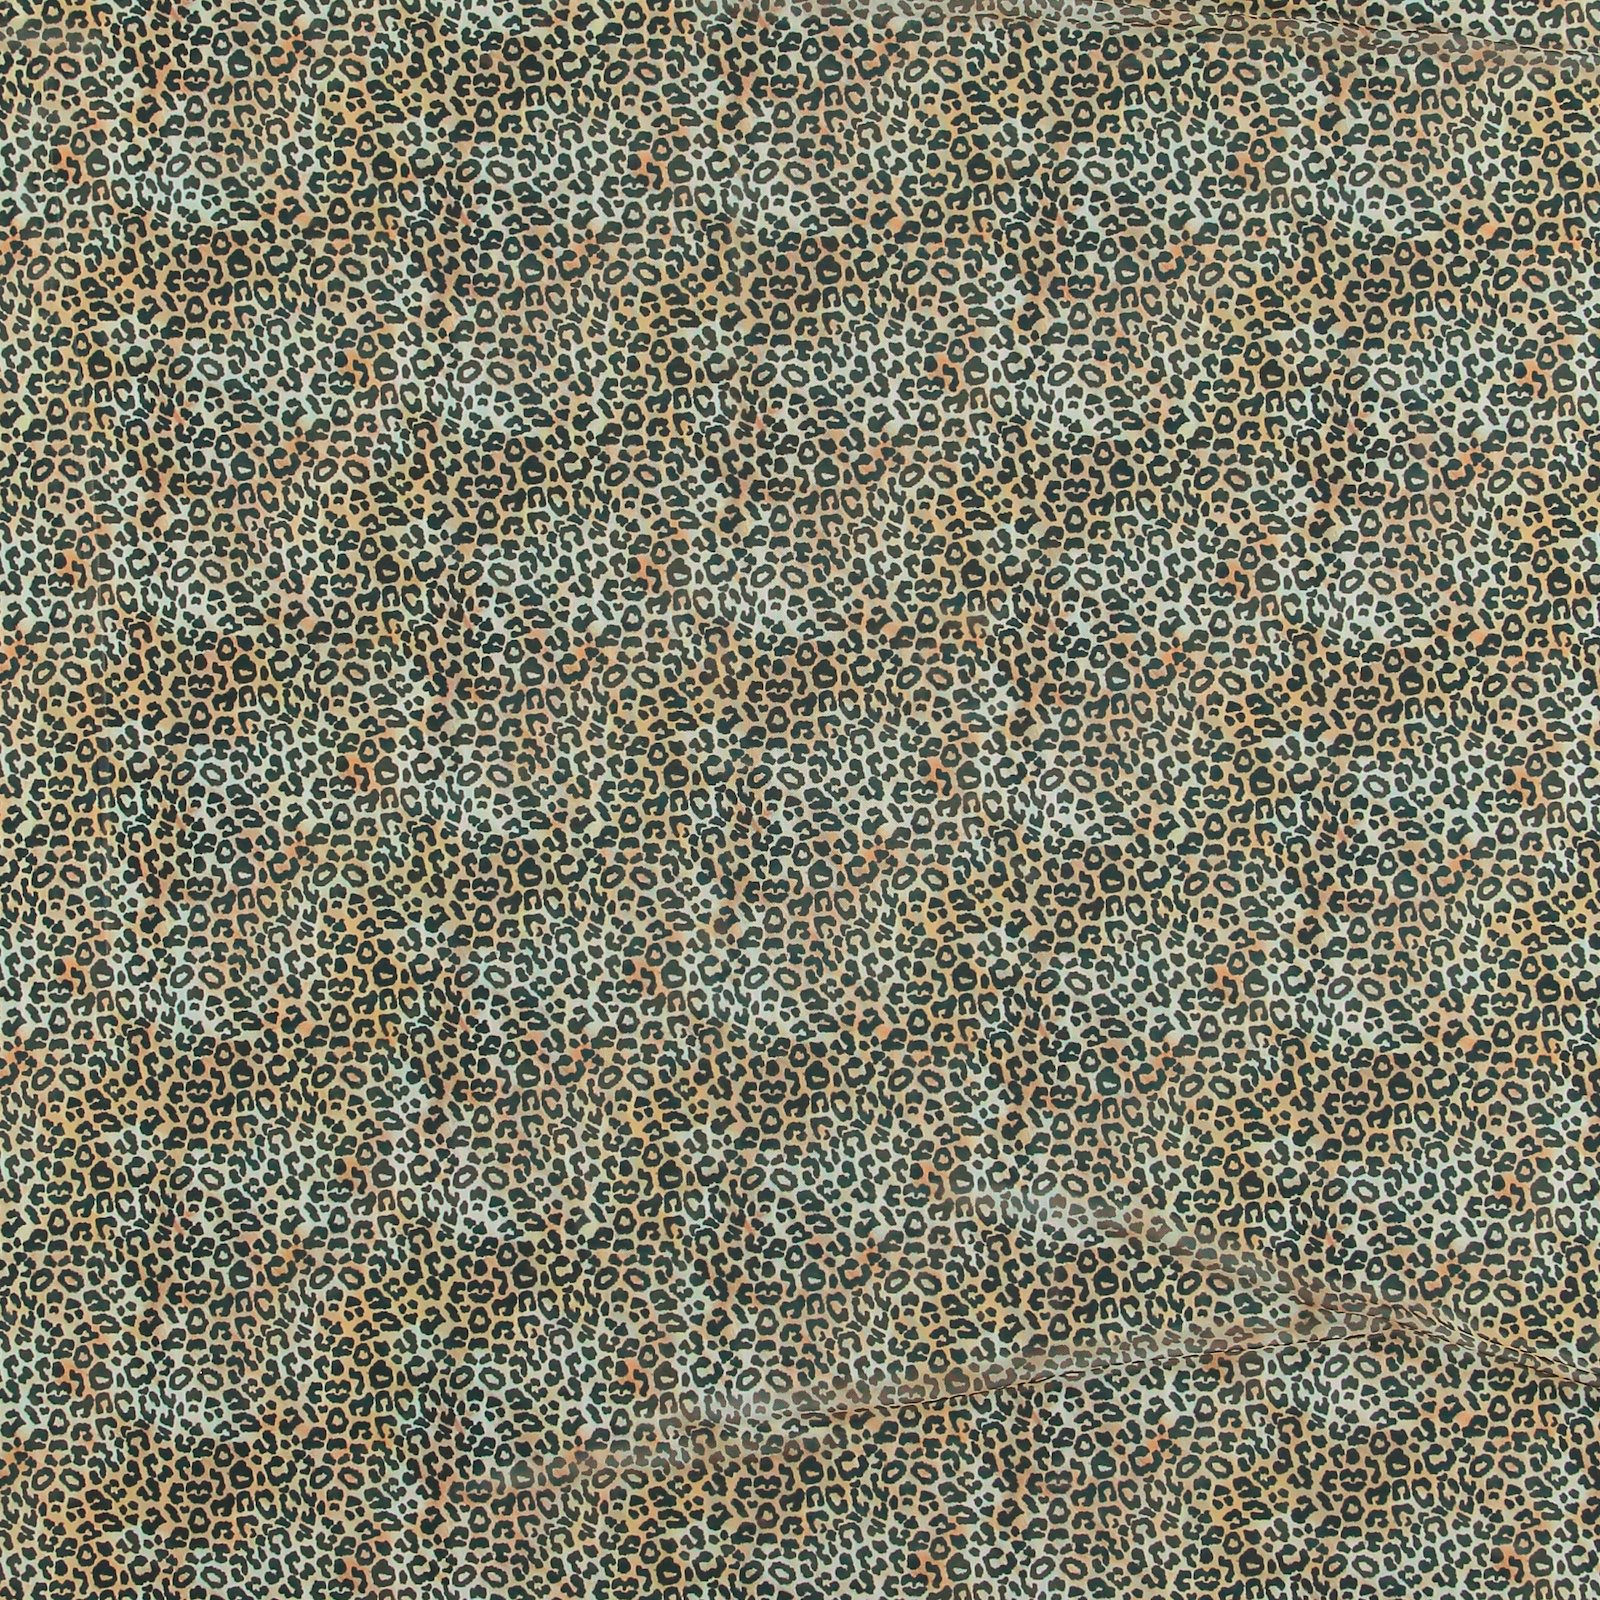 Mesh beige with animal print 640281_pack_sp